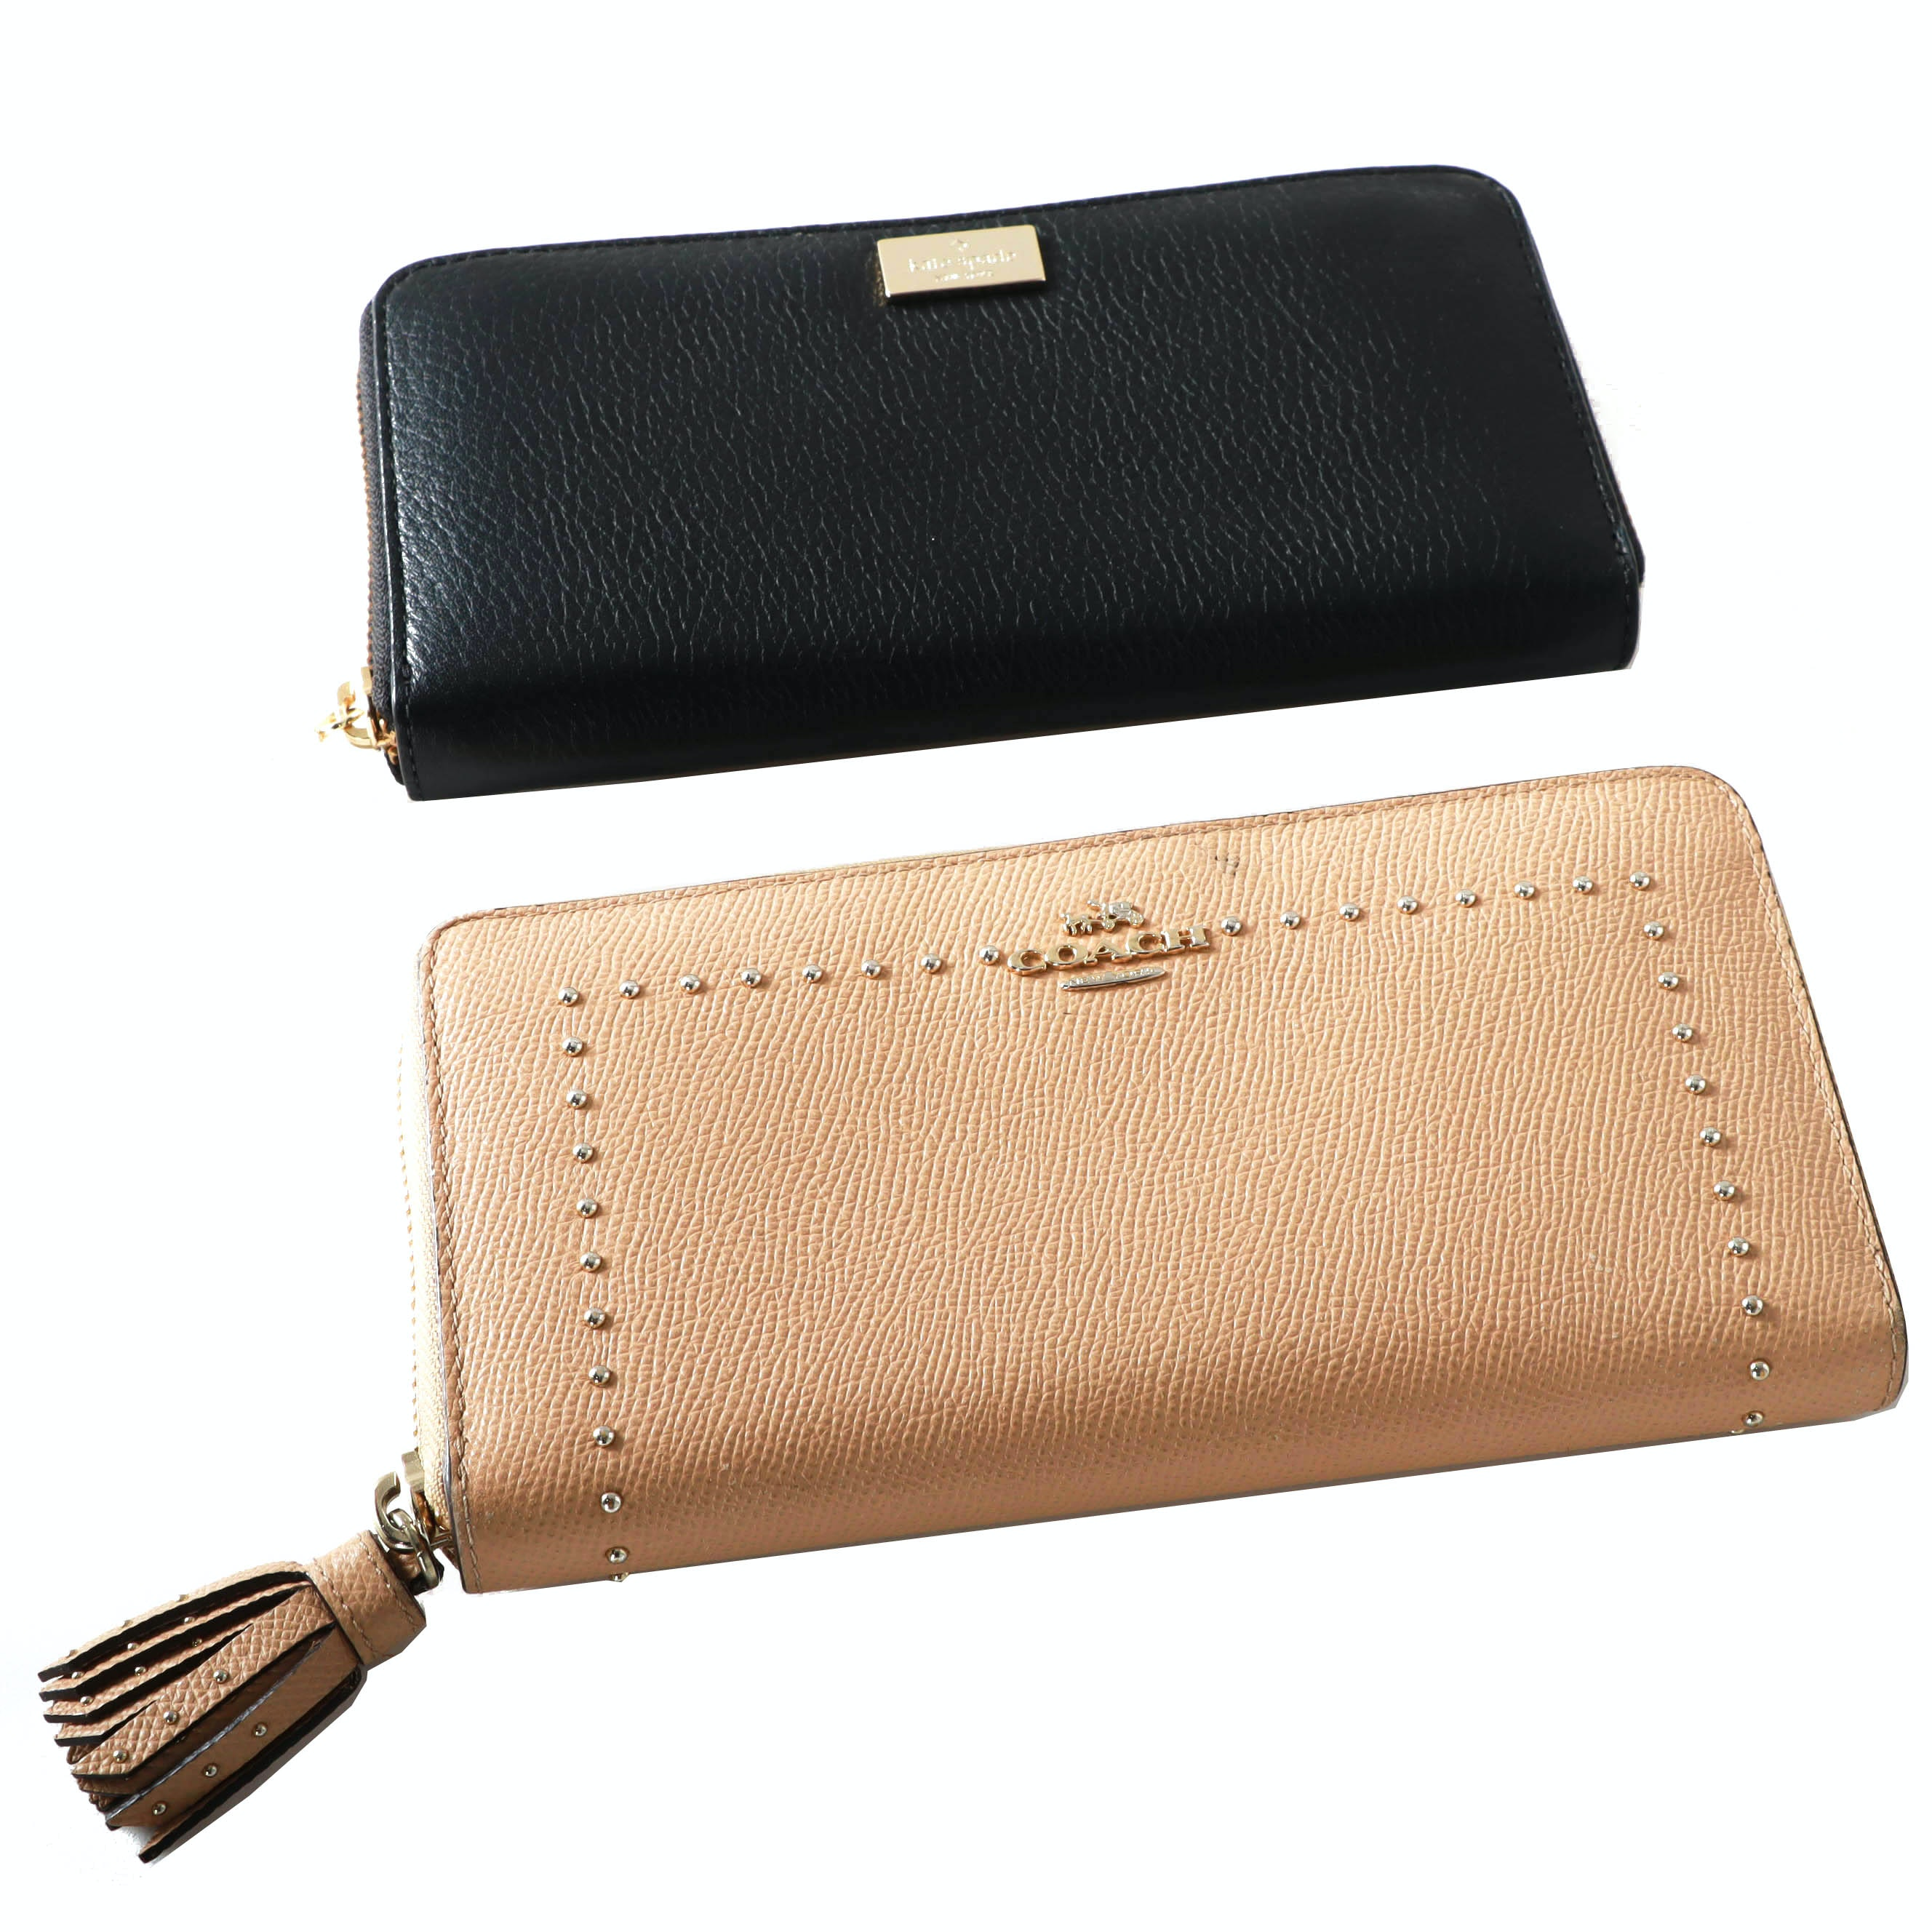 Kate Spade New York Clutch Wallet with Coach Clutch Wallet